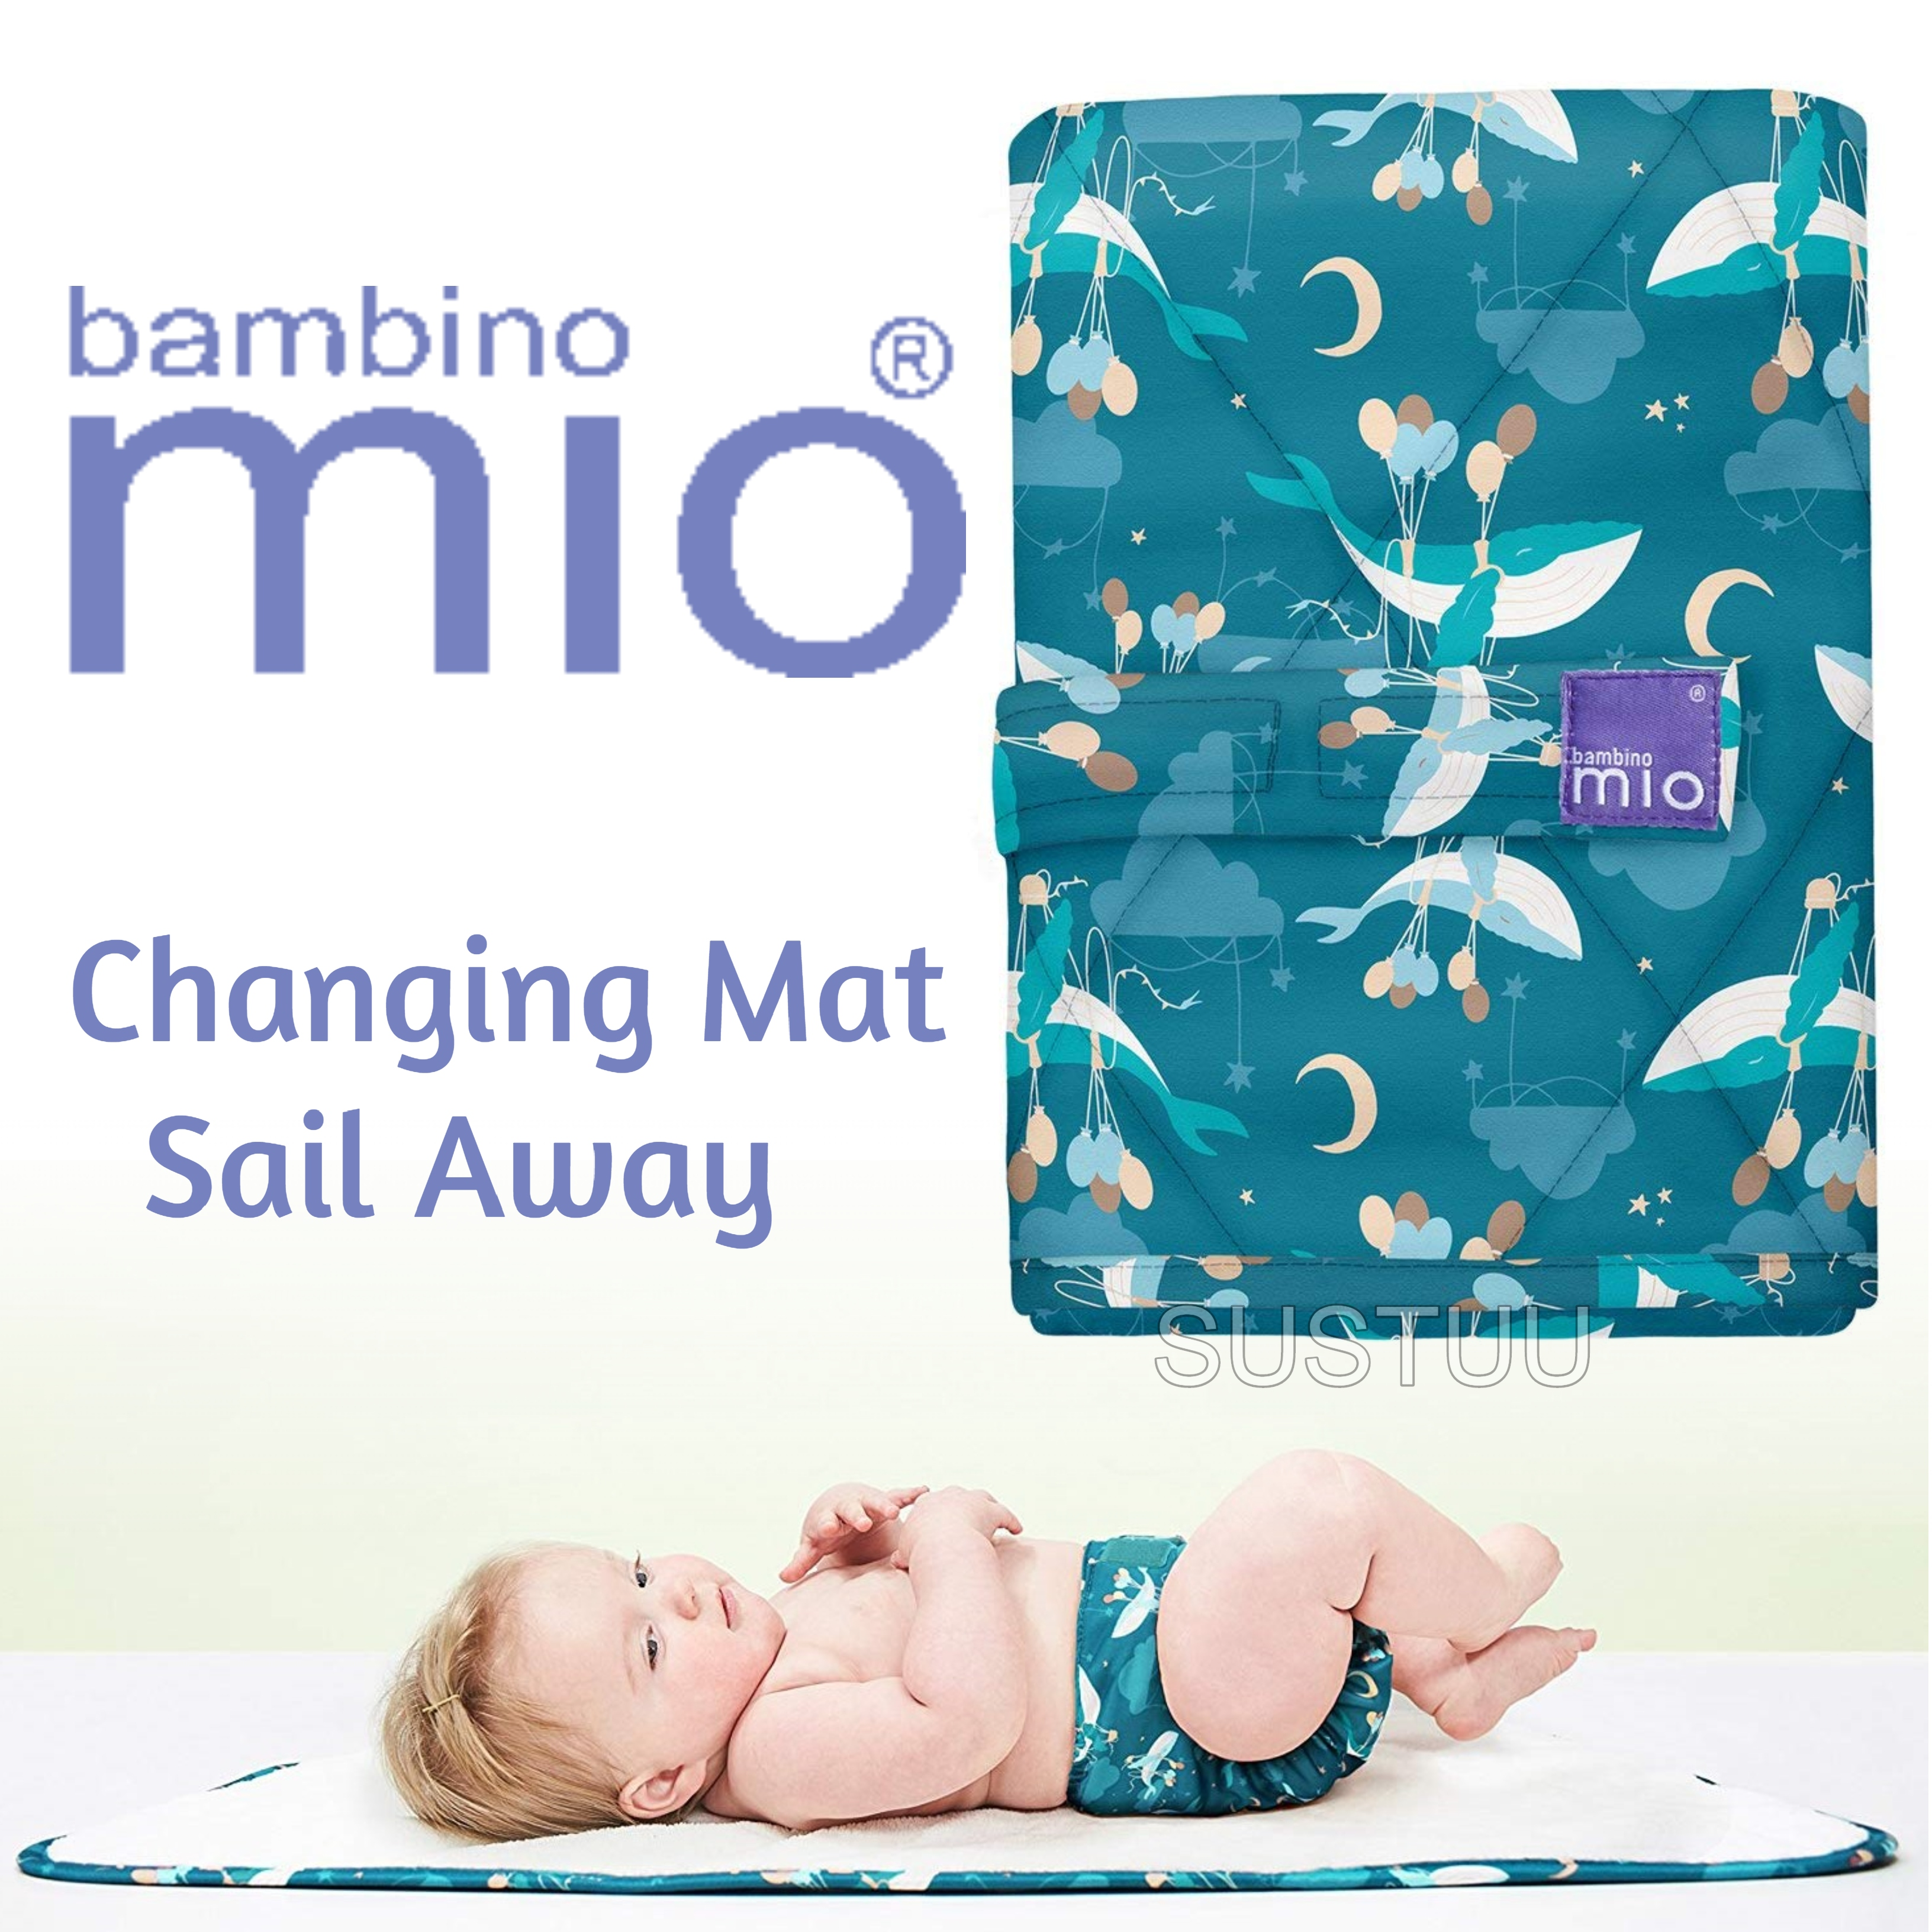 Bambino Mio Changing Mat|For Kid's Changing Nappy|Indoor/Outdoor|Sail Away|